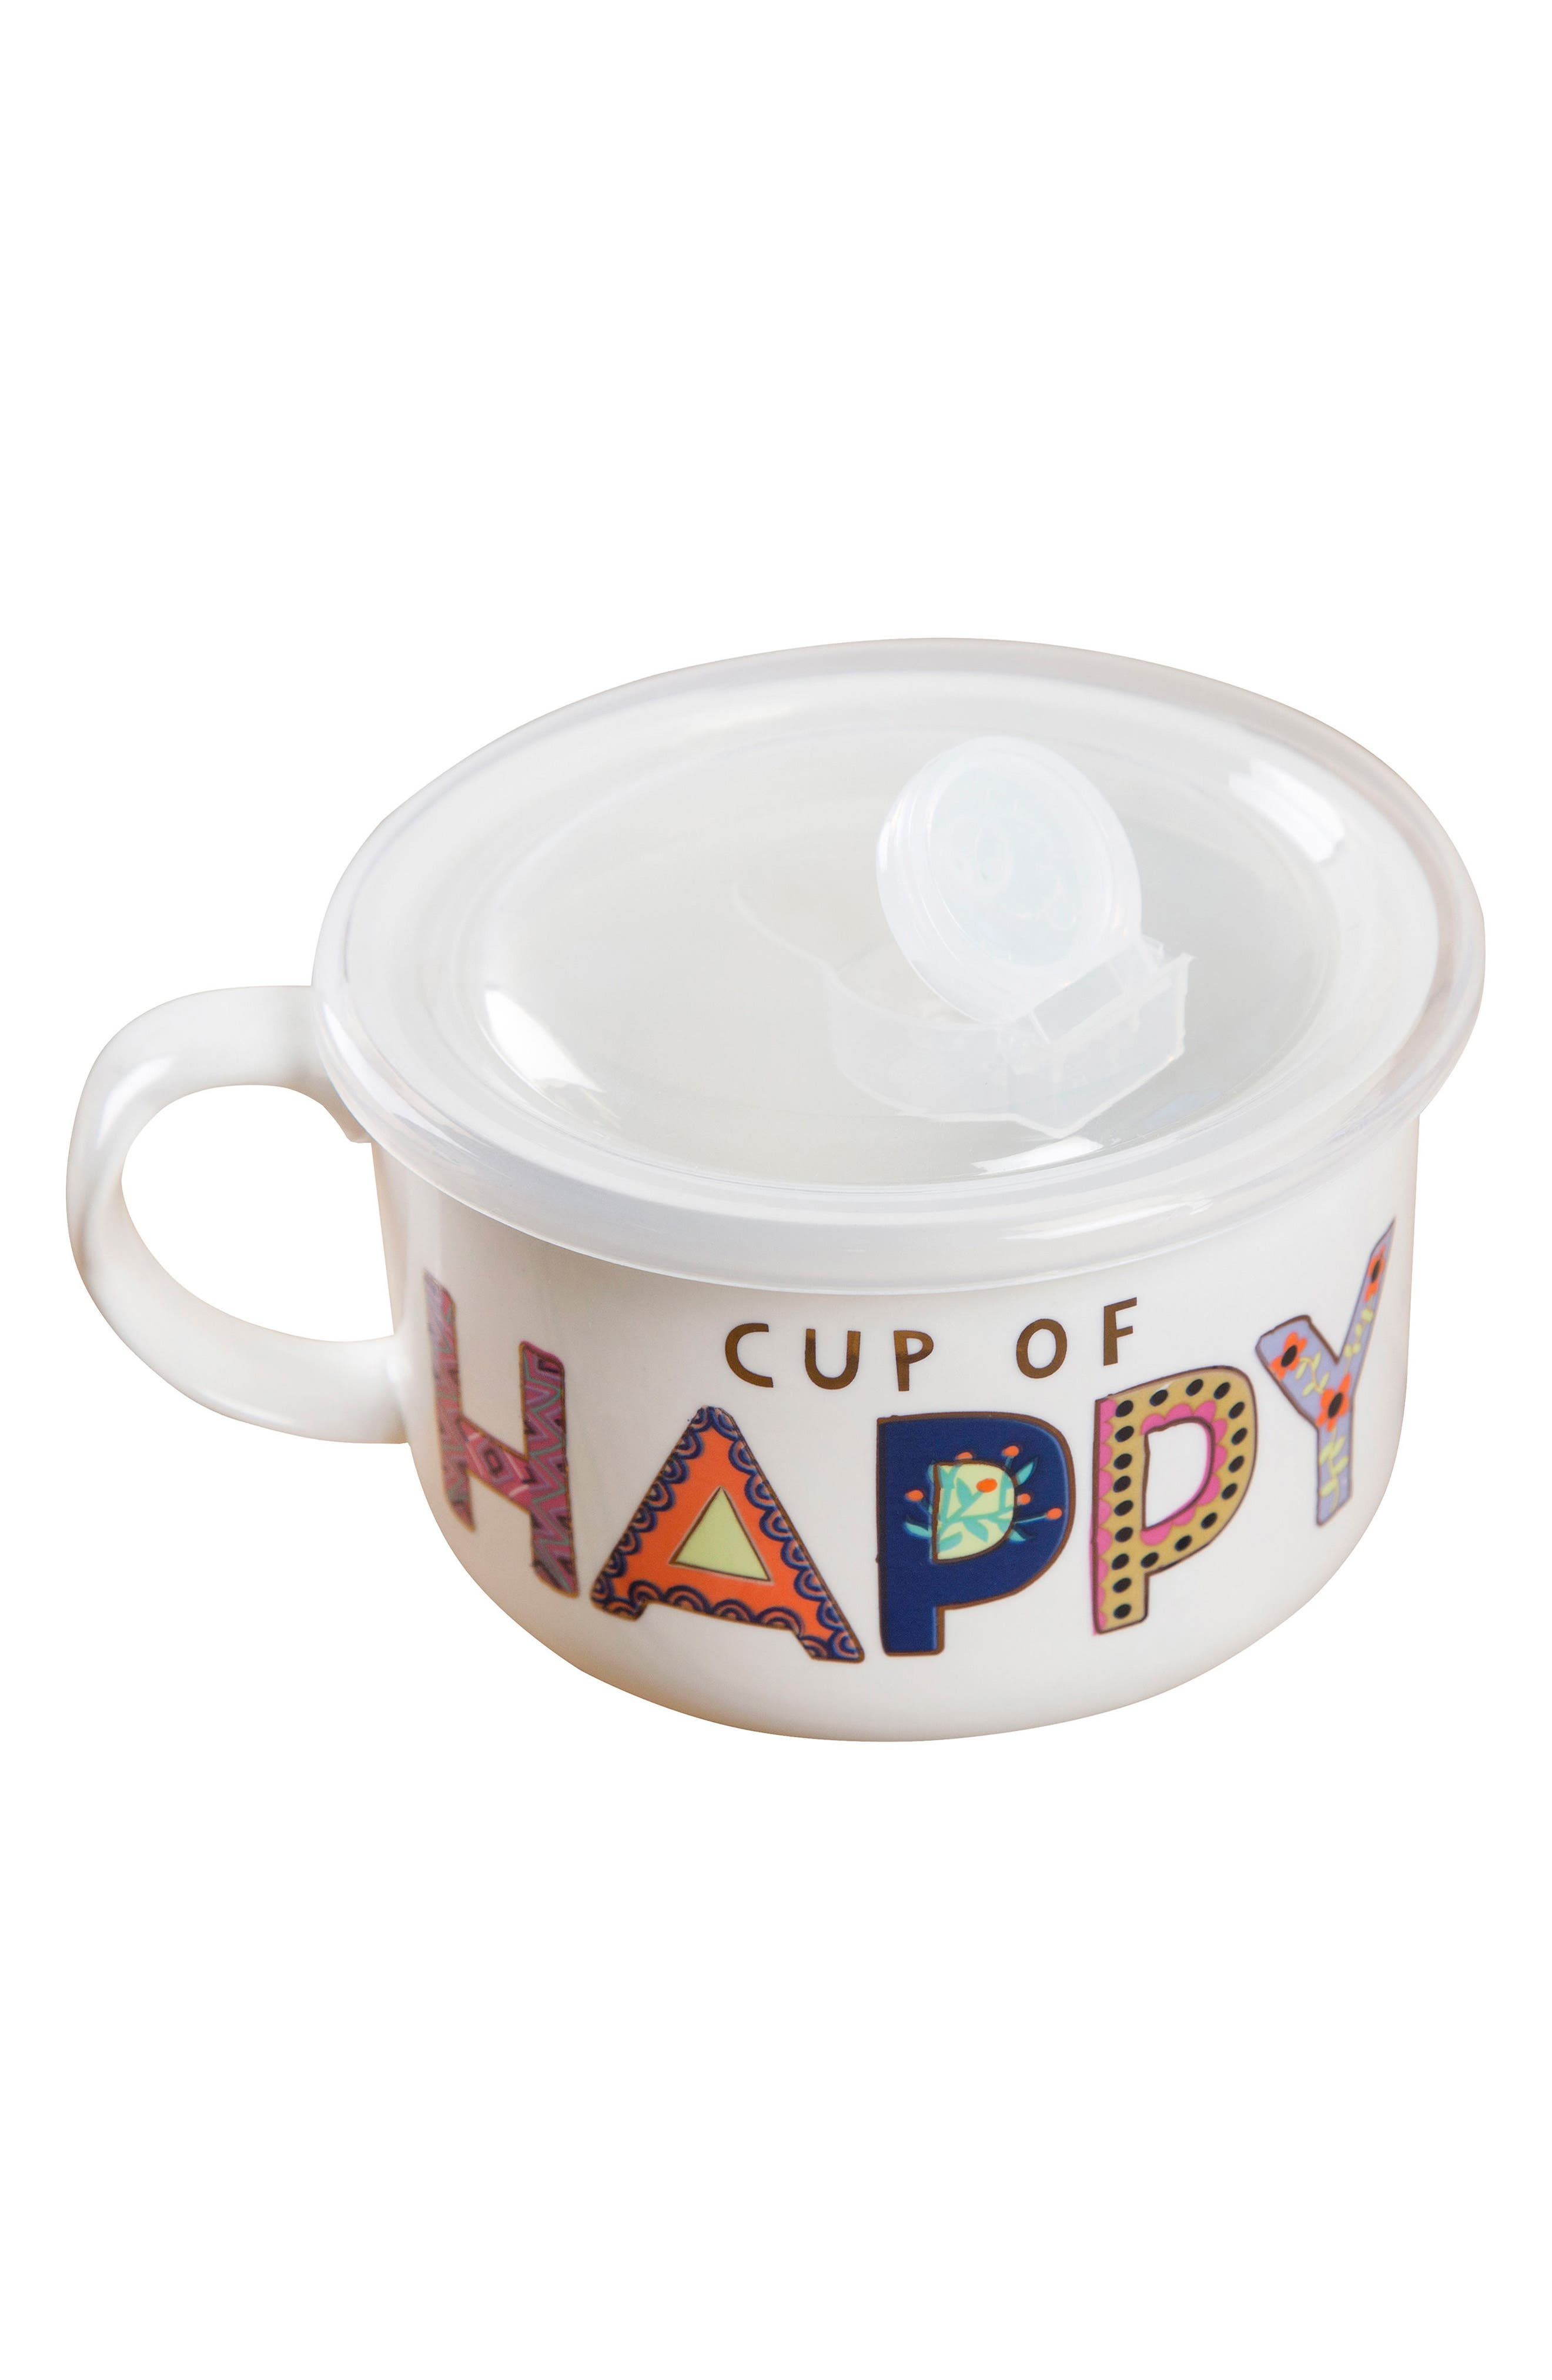 Natural Life Cup of Happy Lidded Ceramic Soup Mug